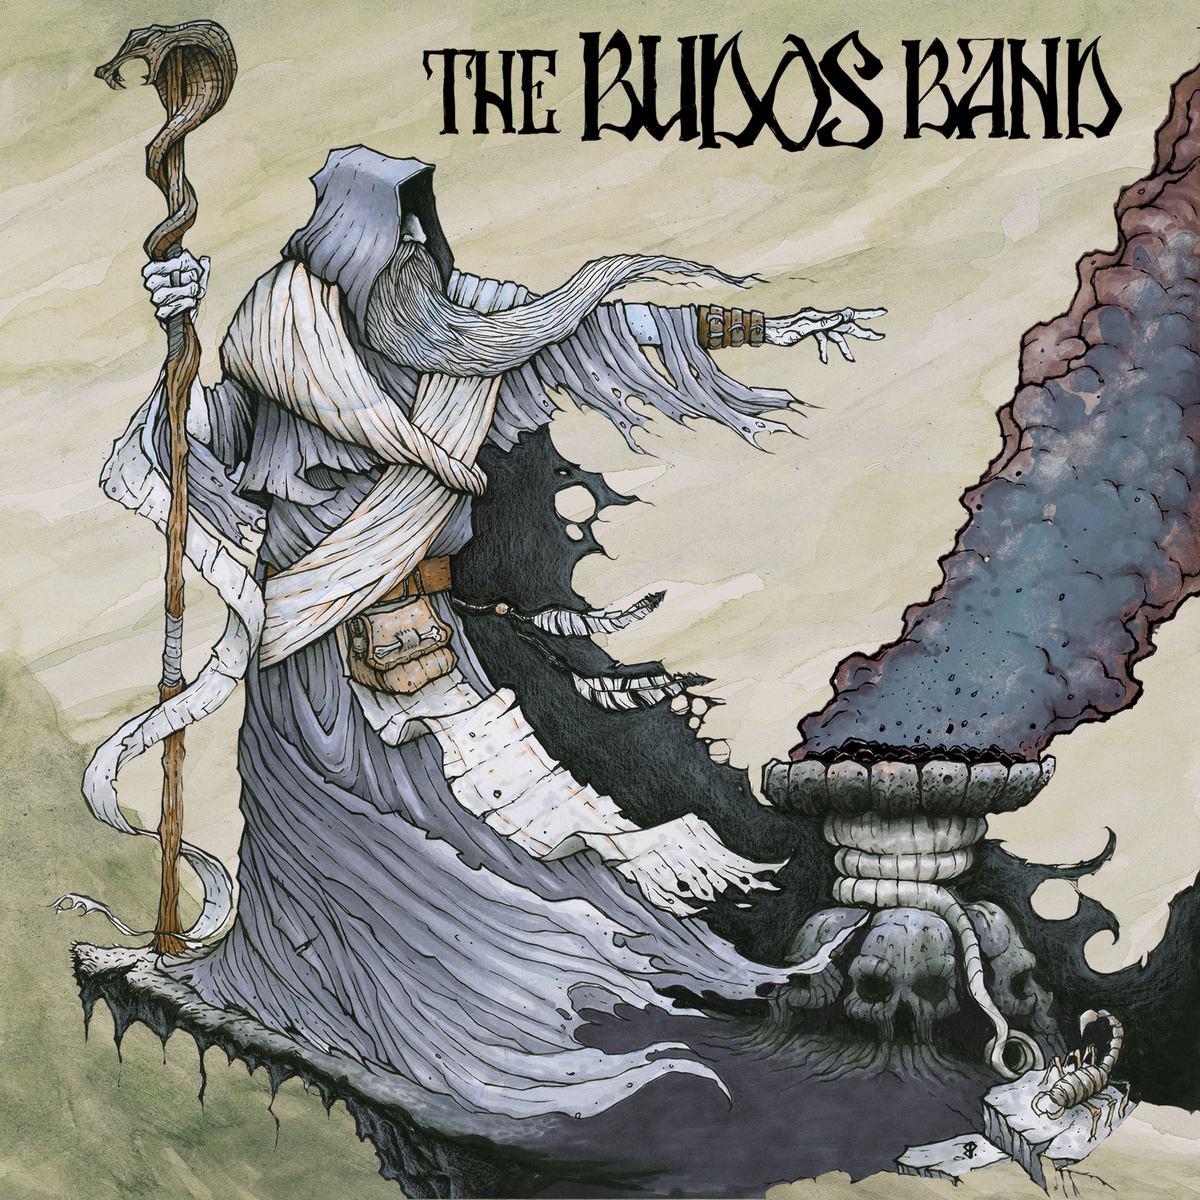 BURNT OFFERING : THE BUDOS IS UPON YOU